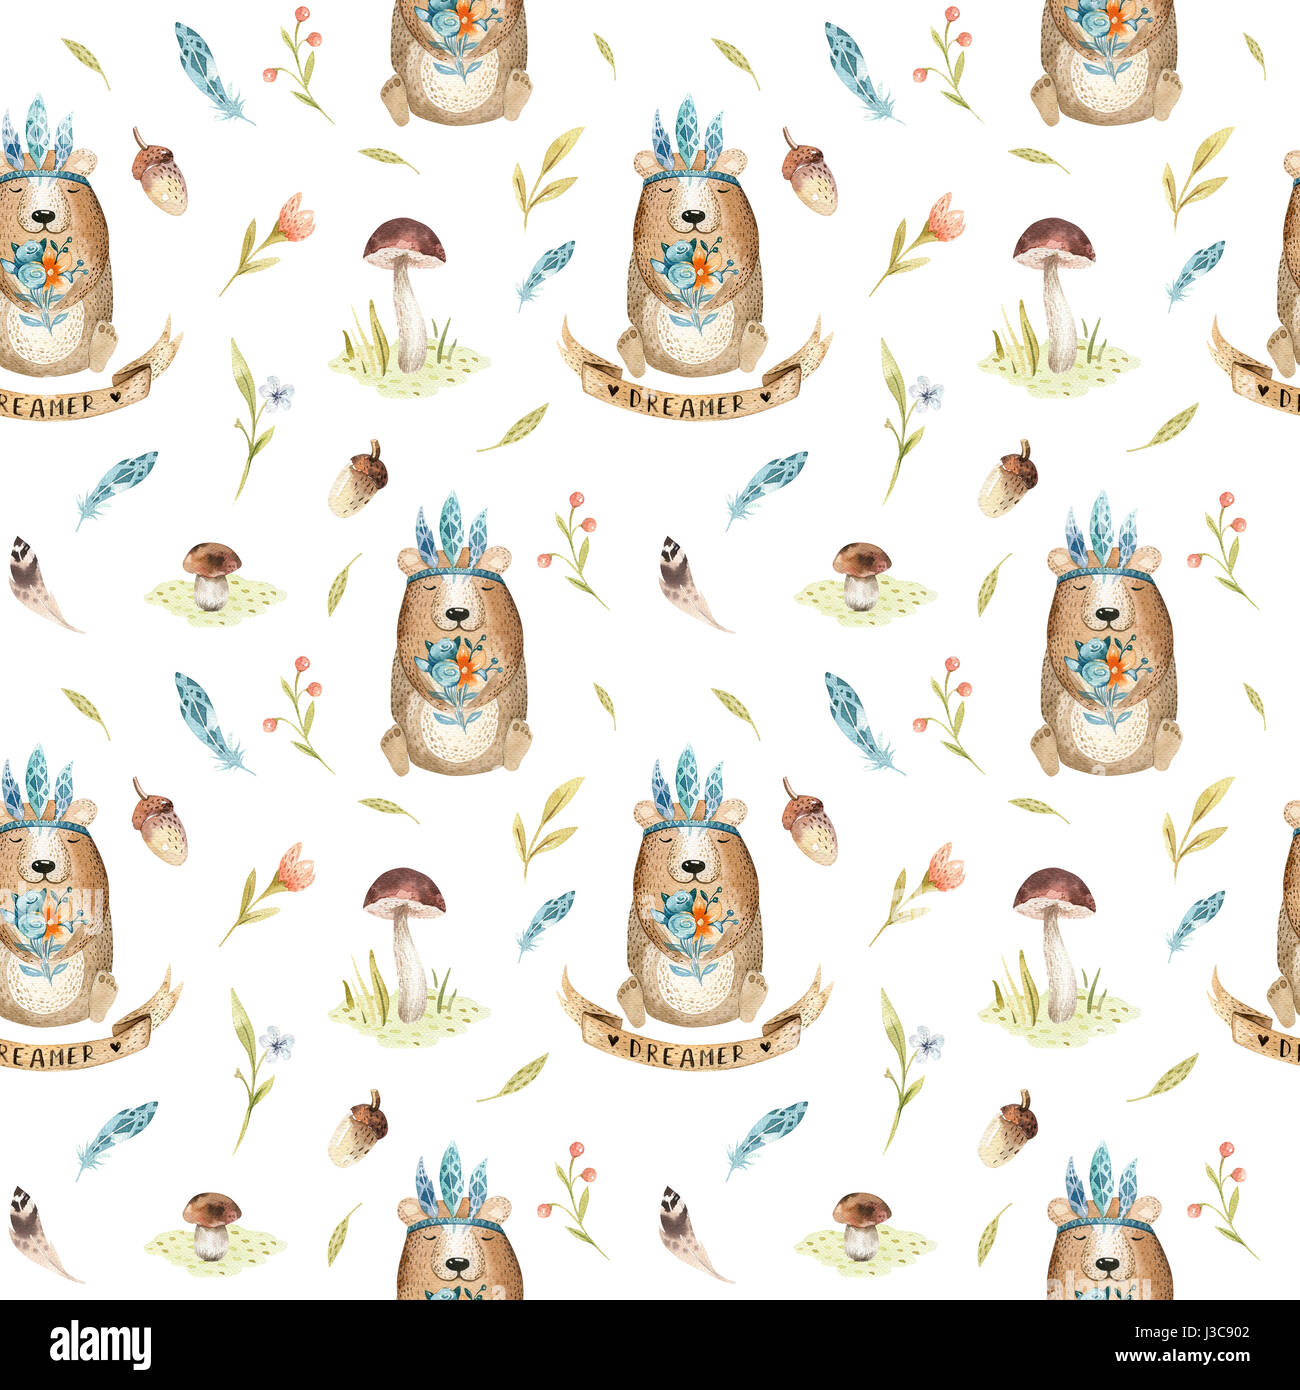 Cute baby bear animal seamless pattern for kindergarten, nursery - Stock Image